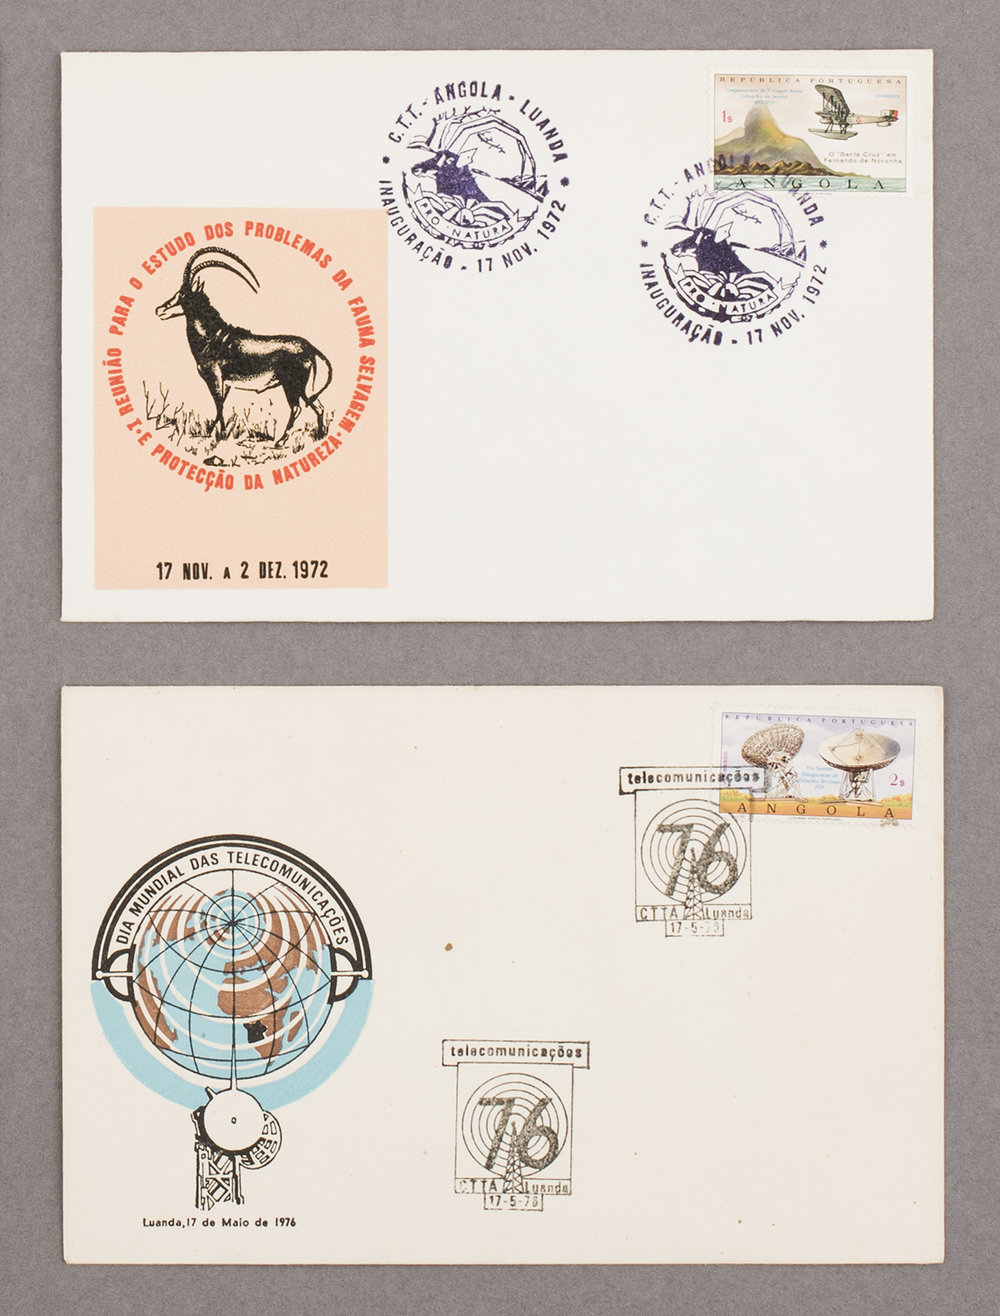 First day covers from Angola, 1972 & 1976, from Feira de Ladra, Lisbon